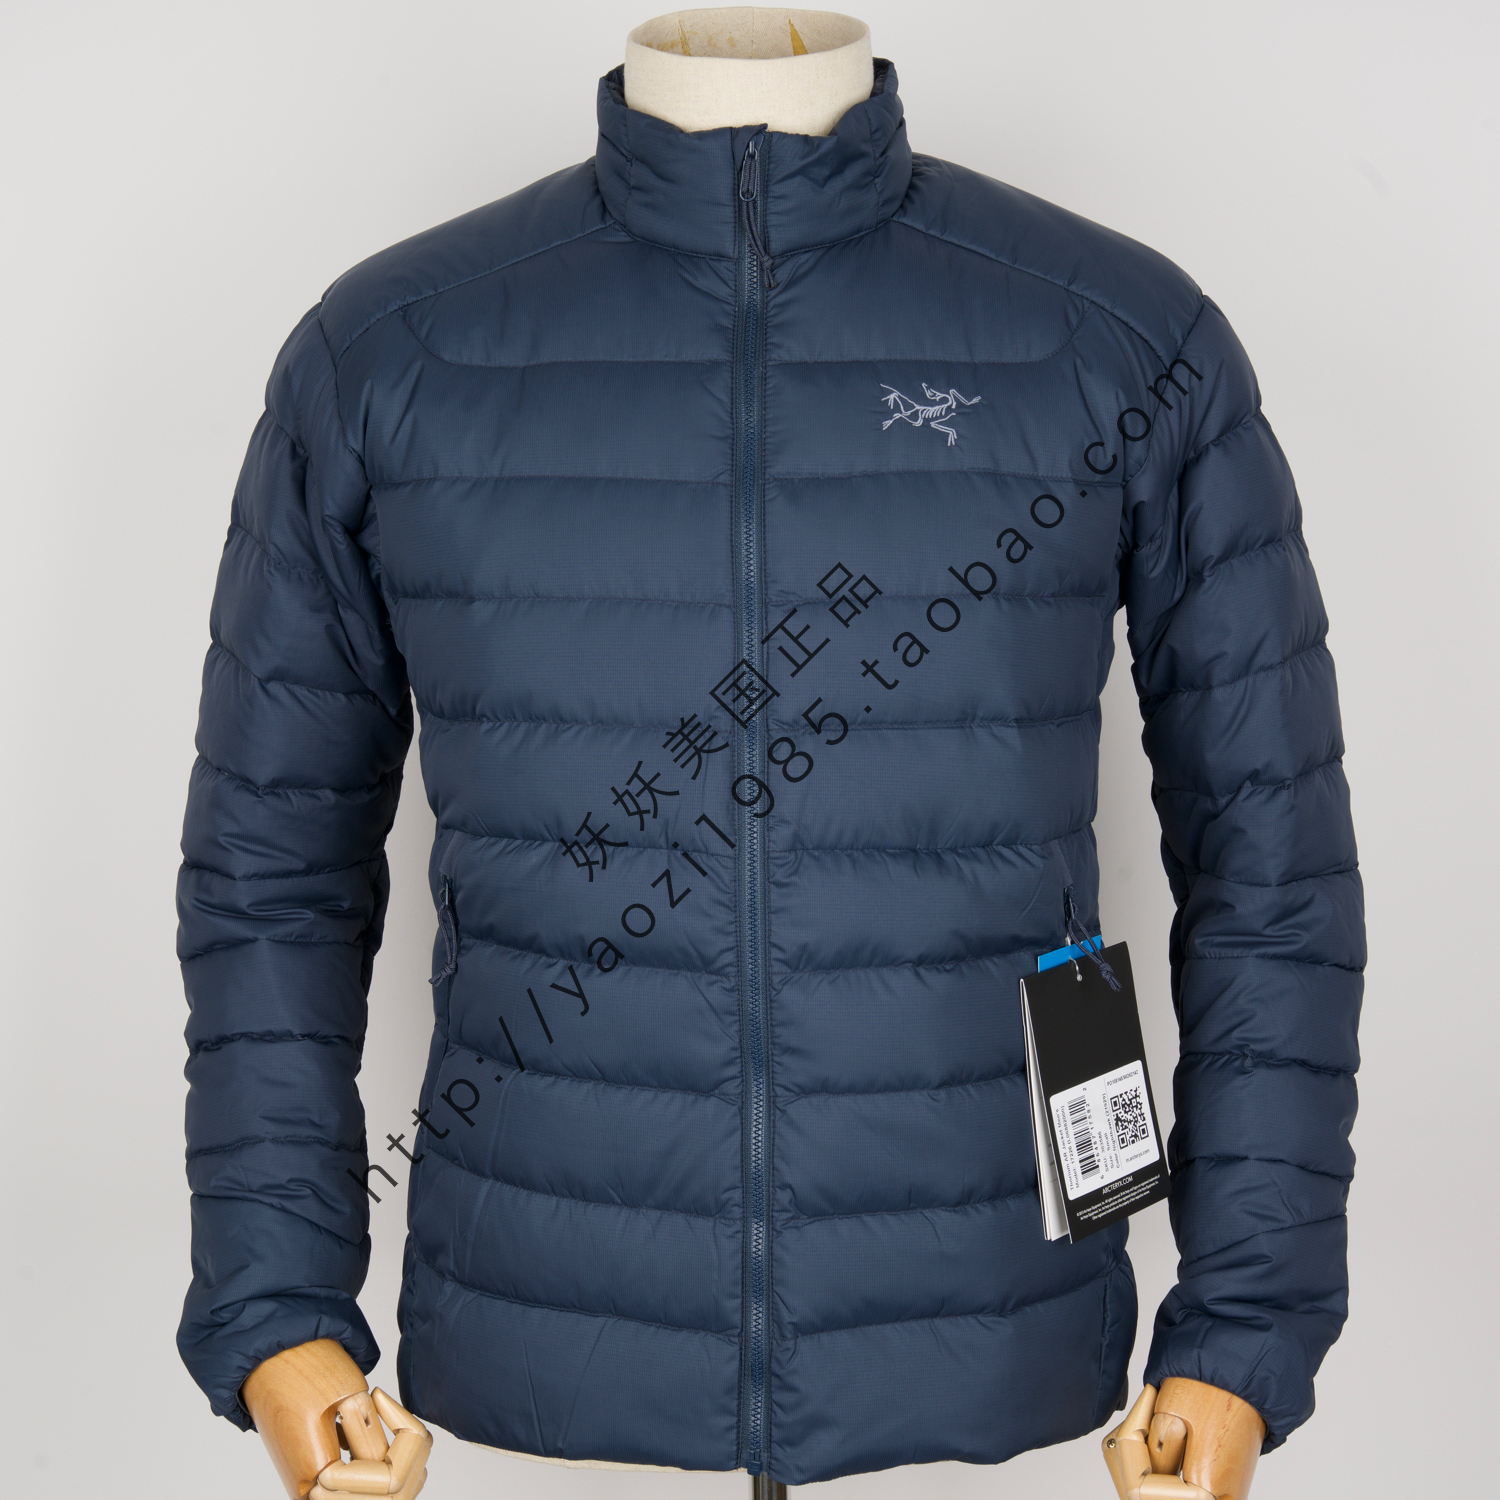 Spot authentic ARCTERYX Thorium AR Jacket down jacket 17226